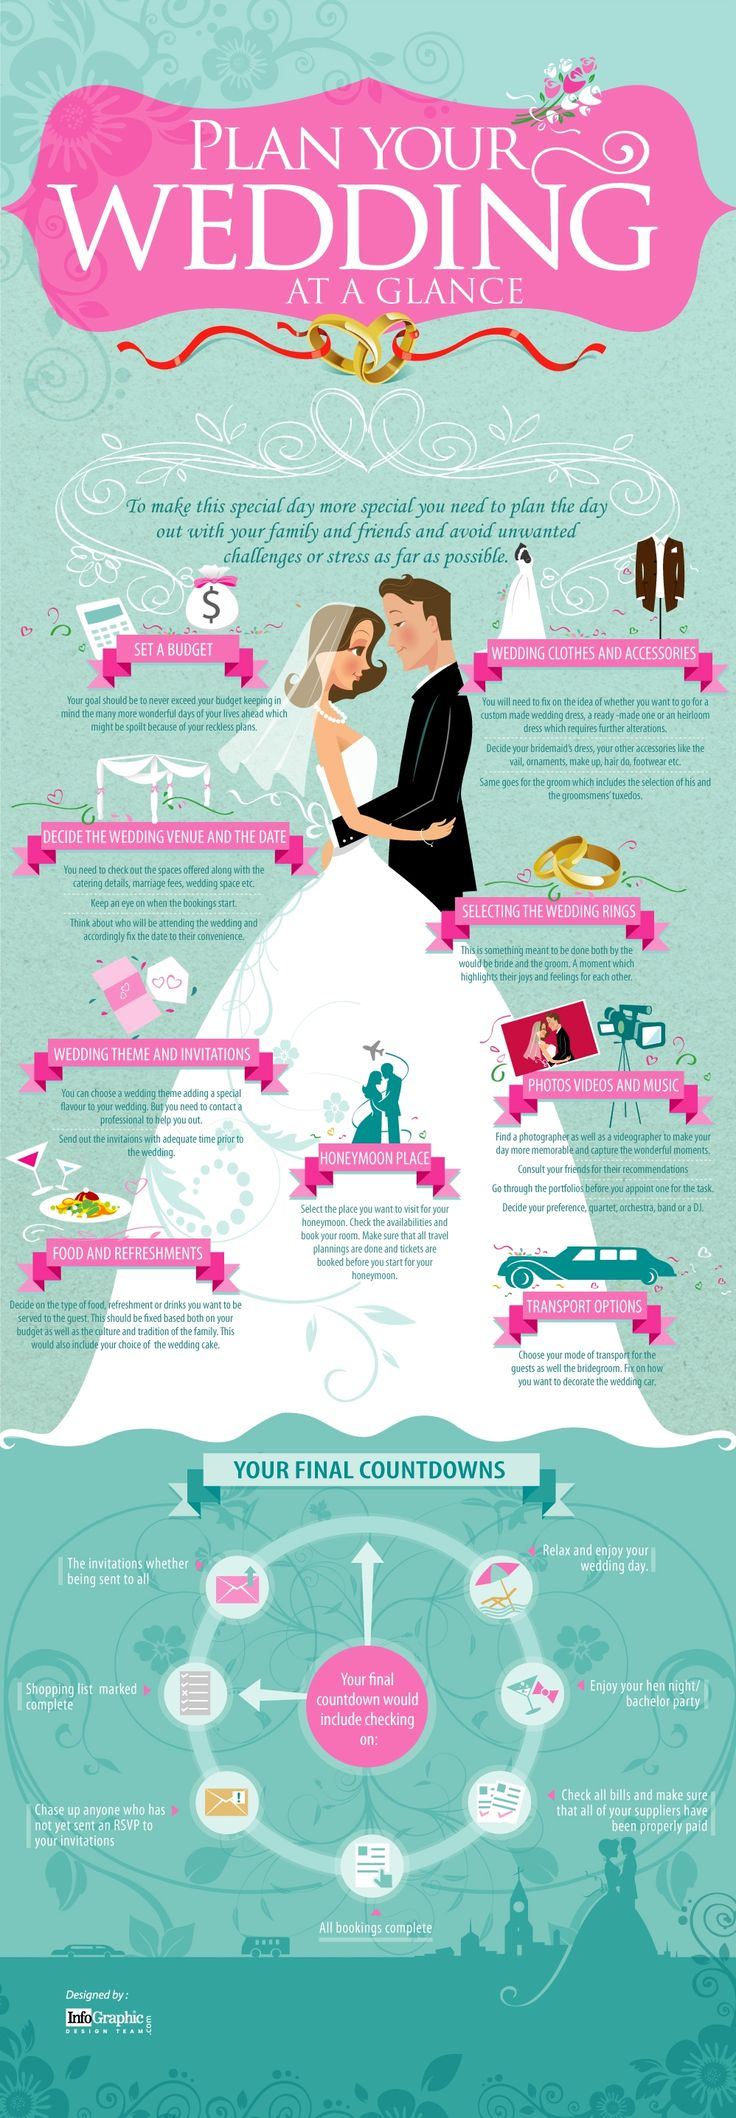 Here's everything you need to know about a wedding. http://www.visualistan.com/2013/12/plan-your-wedding-at-glance-infographic.html